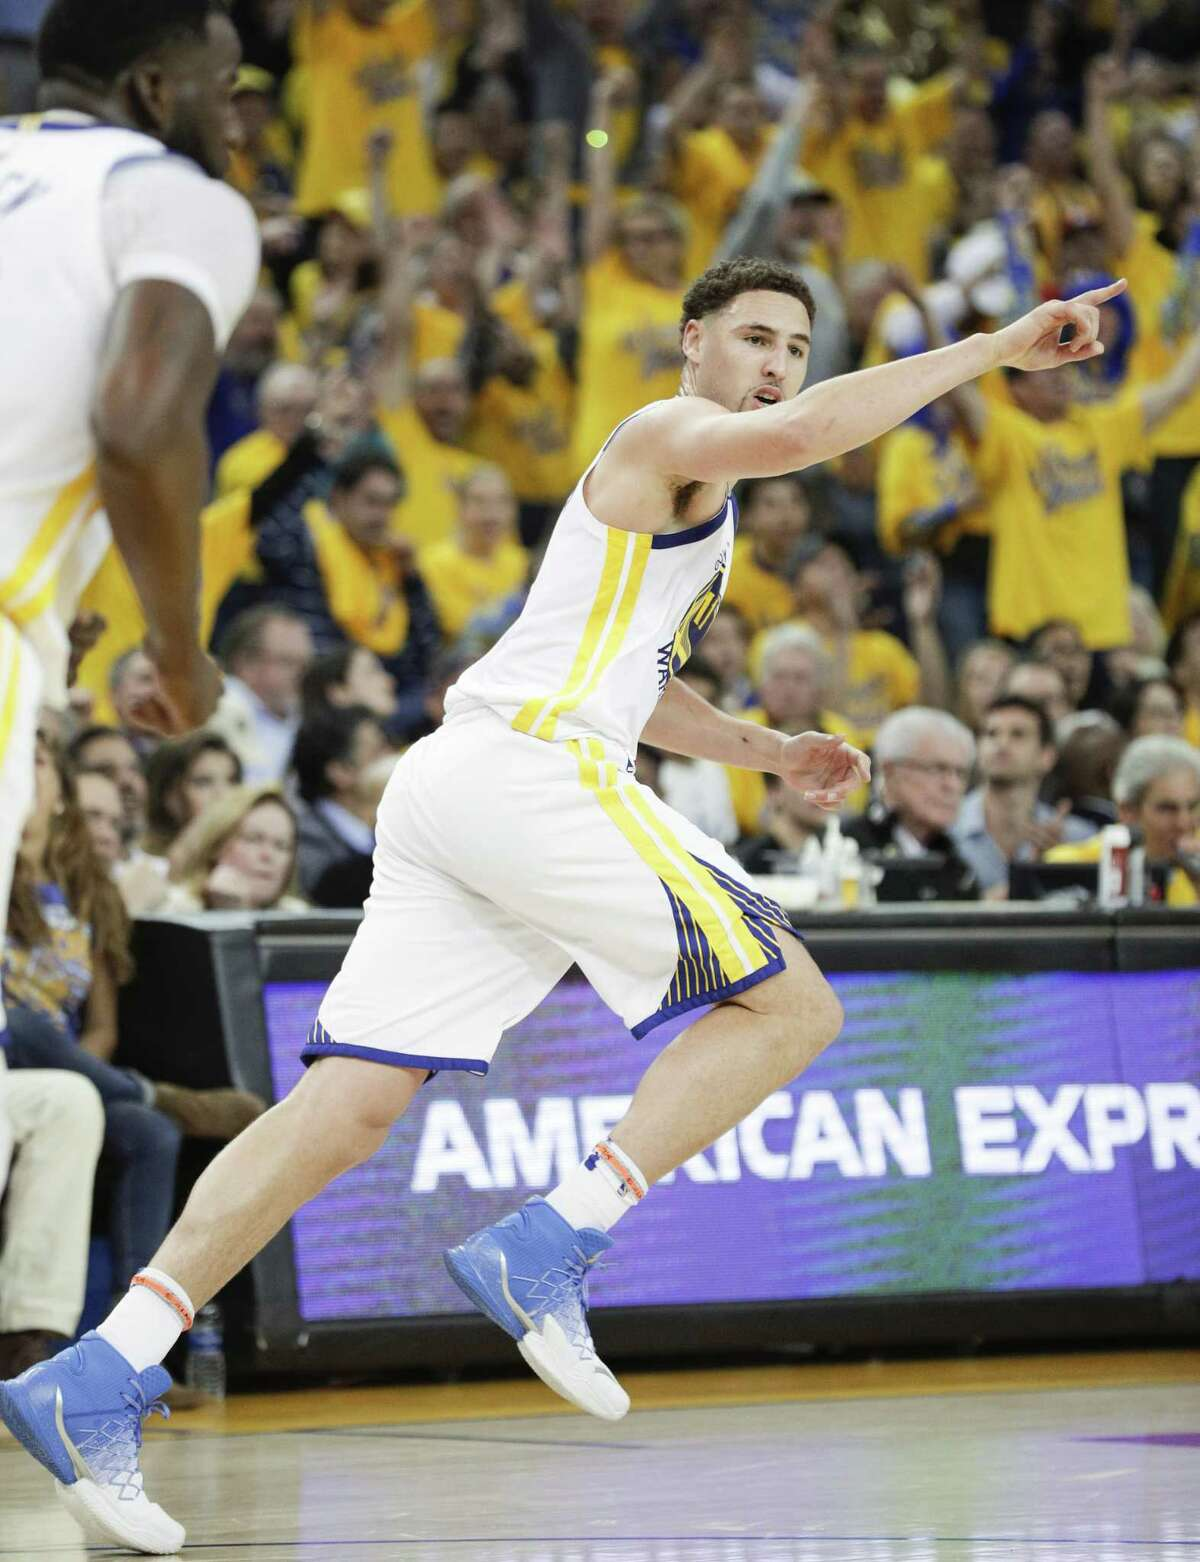 Golden State Warriors' Klay Thompson reacts after hitting a three-pointer in the second quarter during game 1 of round 2 of the Western Conference Finals between the Golden State Warriors and the New Orleans Pelicans at Oracle Arena on Saturday, April 28, 2018 in Oakland, Calif.